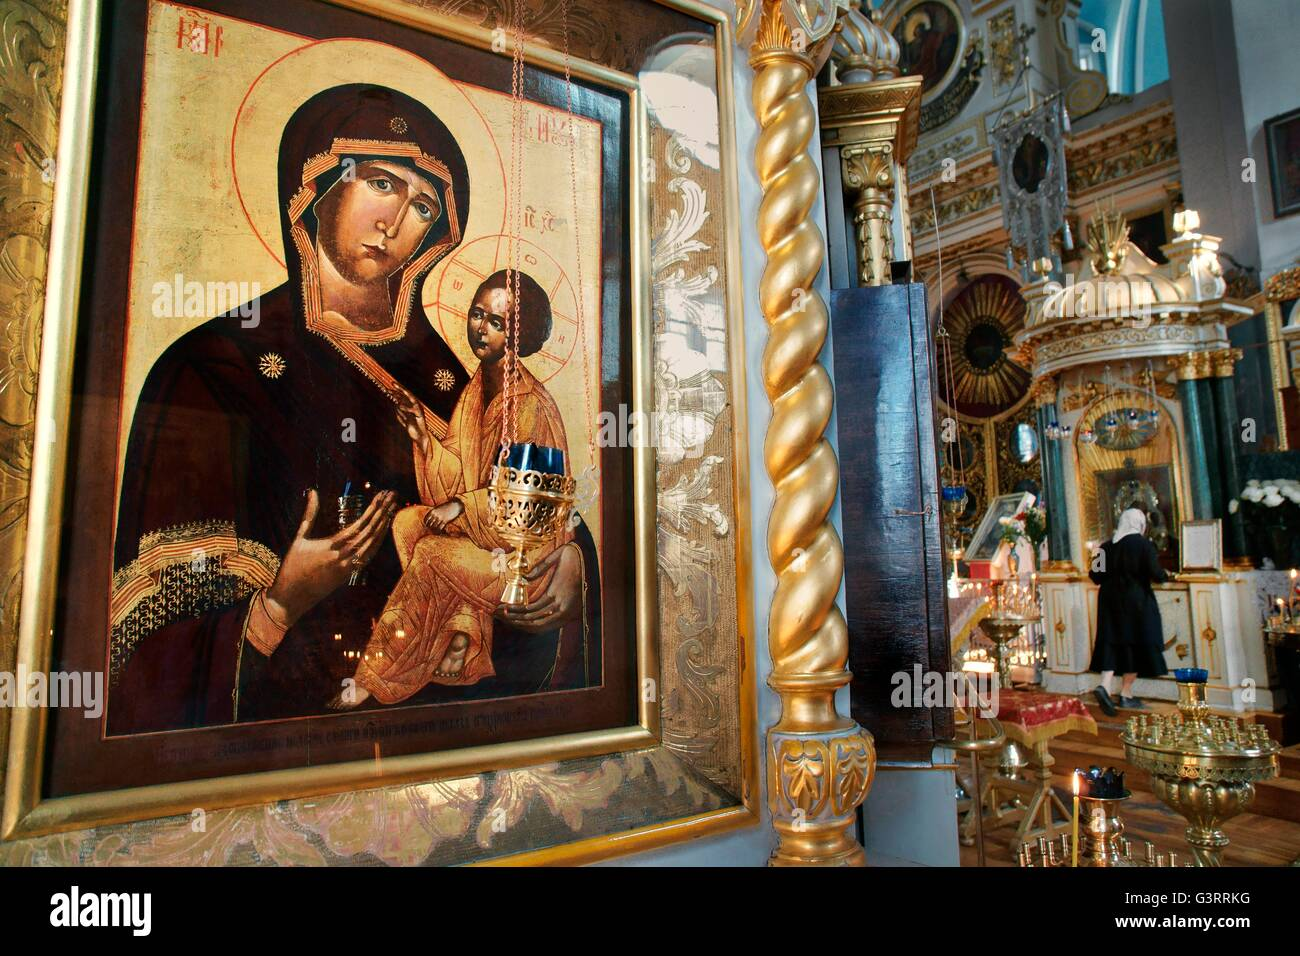 Saint Petersburg Russia. Saint Vladimir's Cathedral interior. Russian Christian Orthodox art Icon of Madonna and - Stock Image